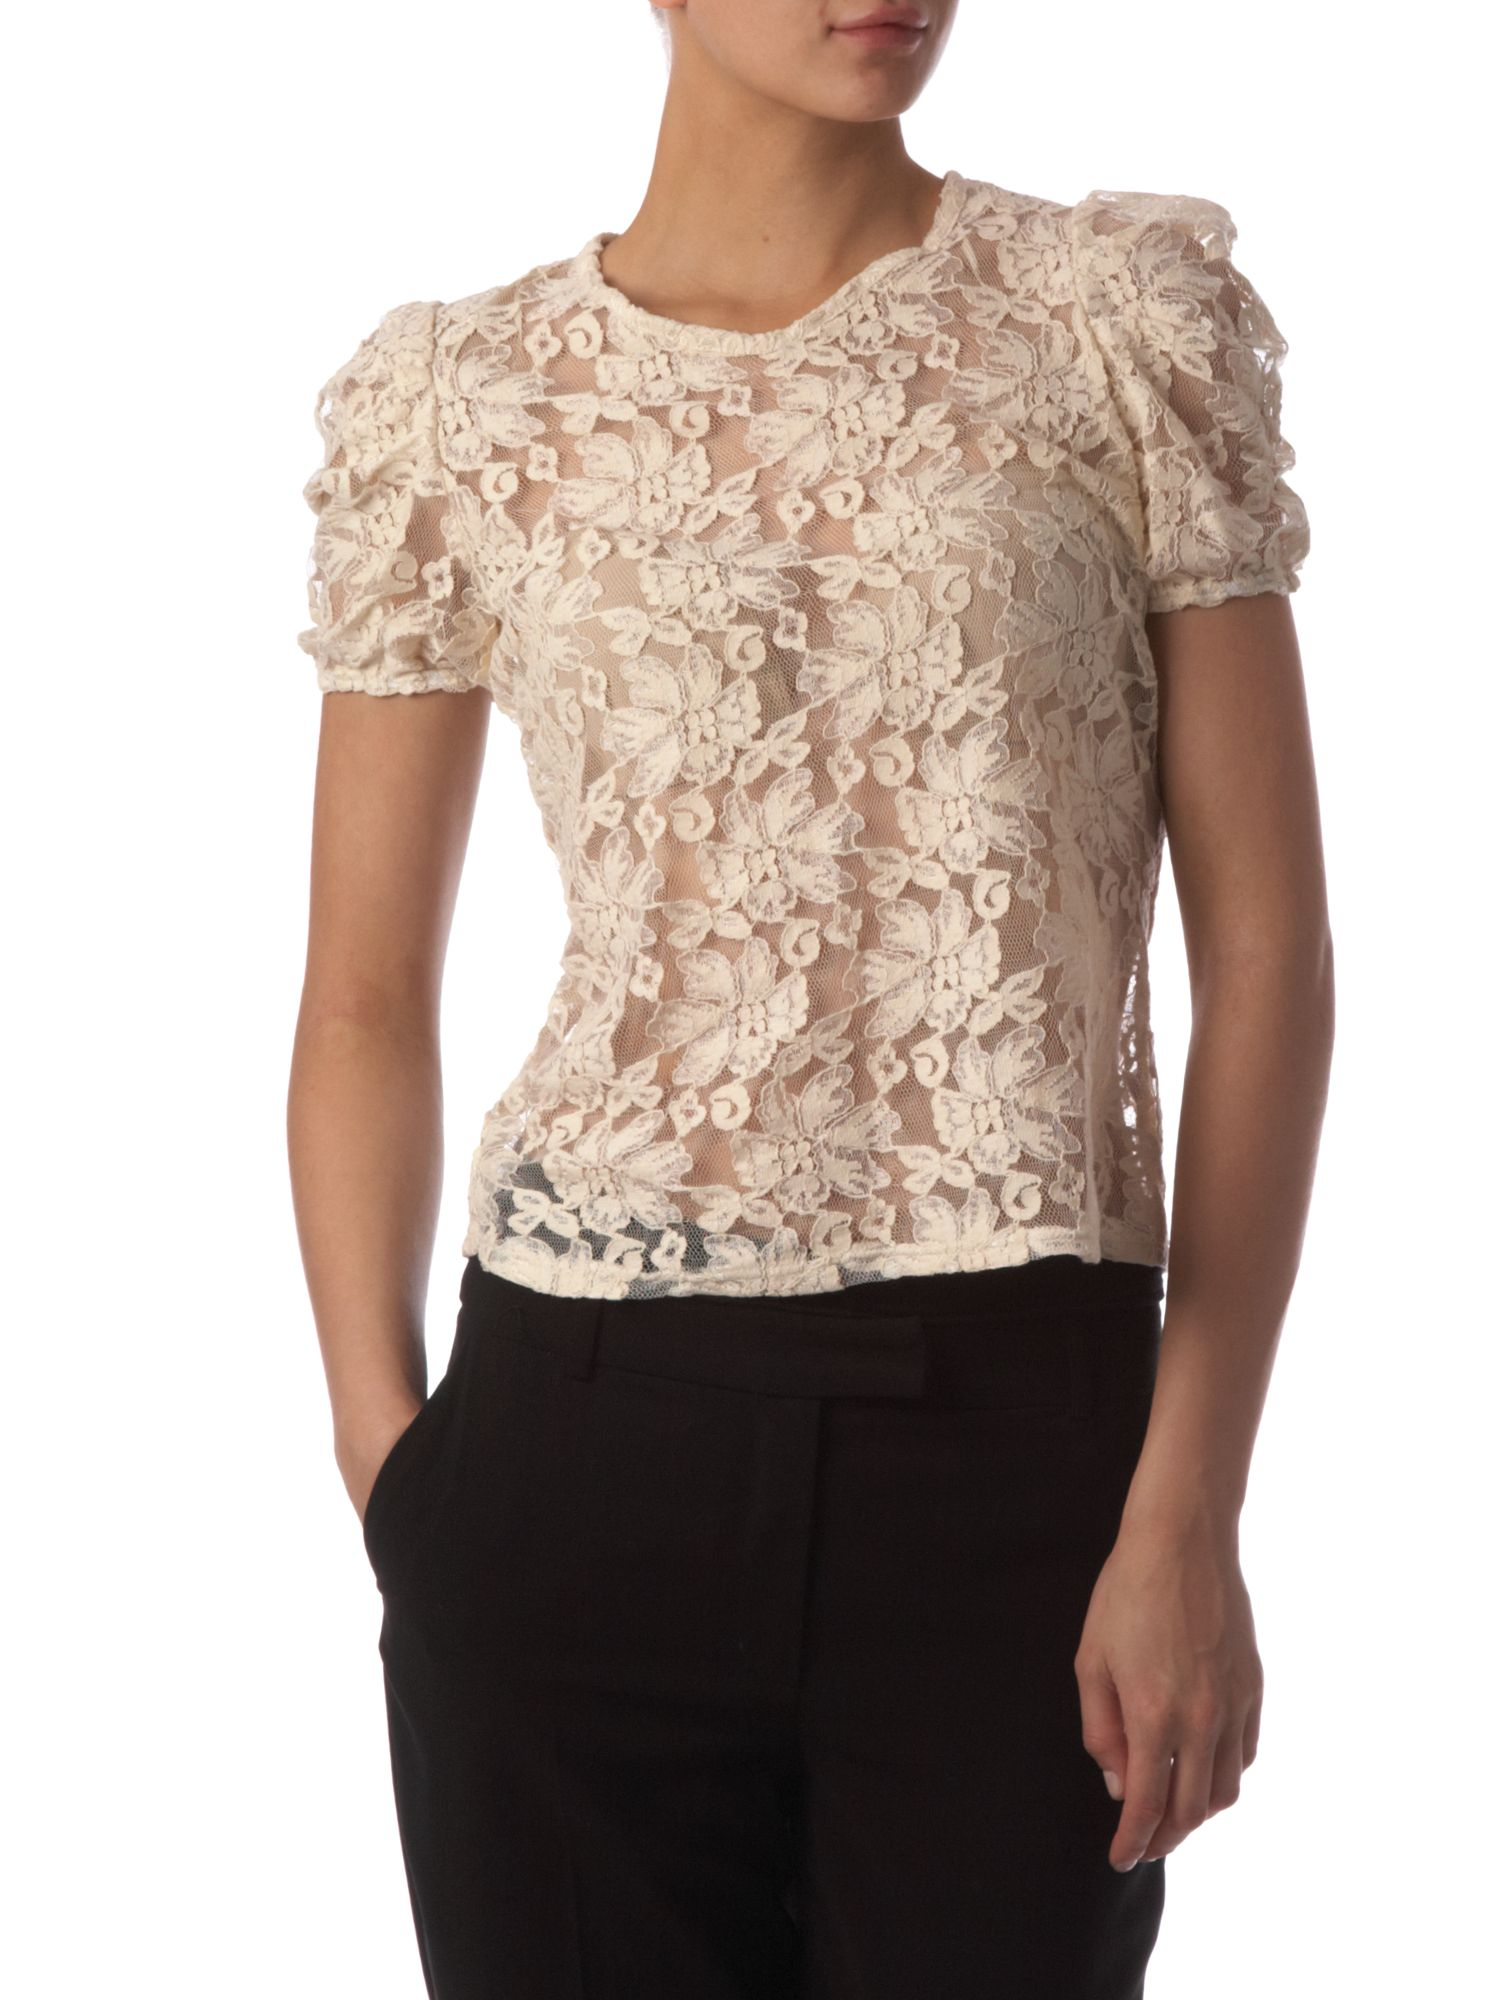 Therapy All over lace blouse product image